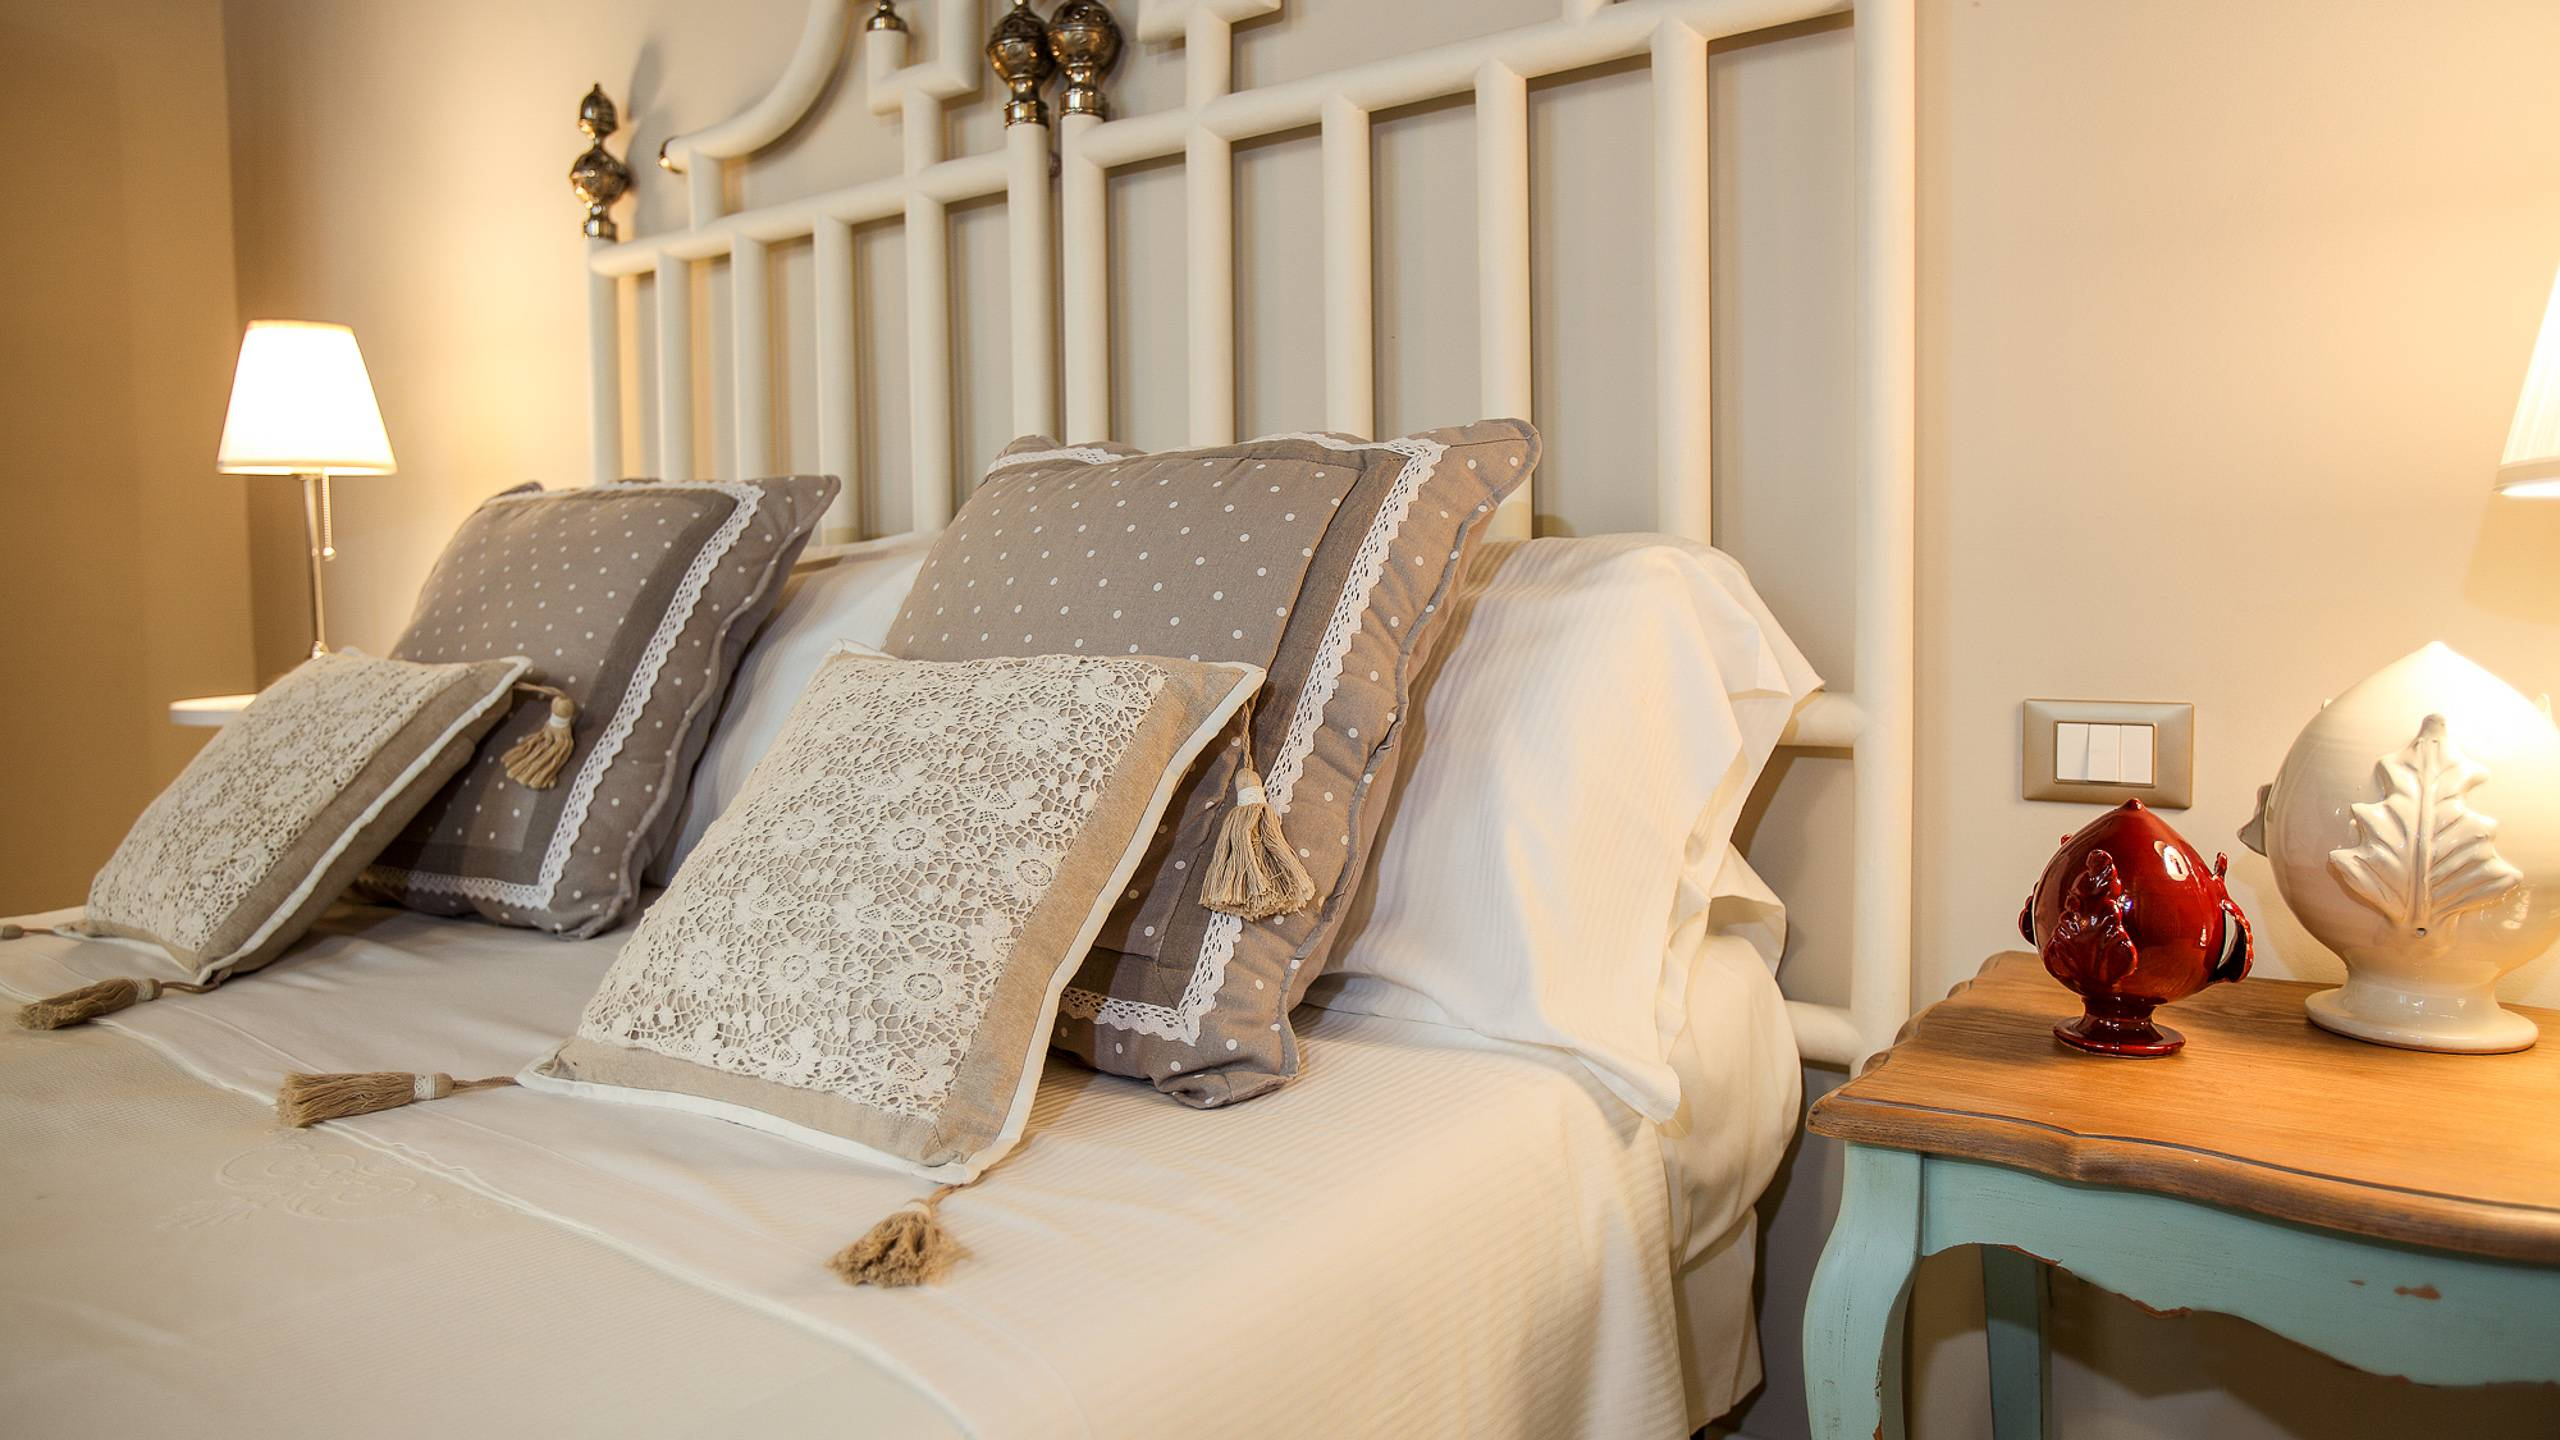 IMG--3292-Bed-and-Breakfast-palazzo-bregante-monopoli